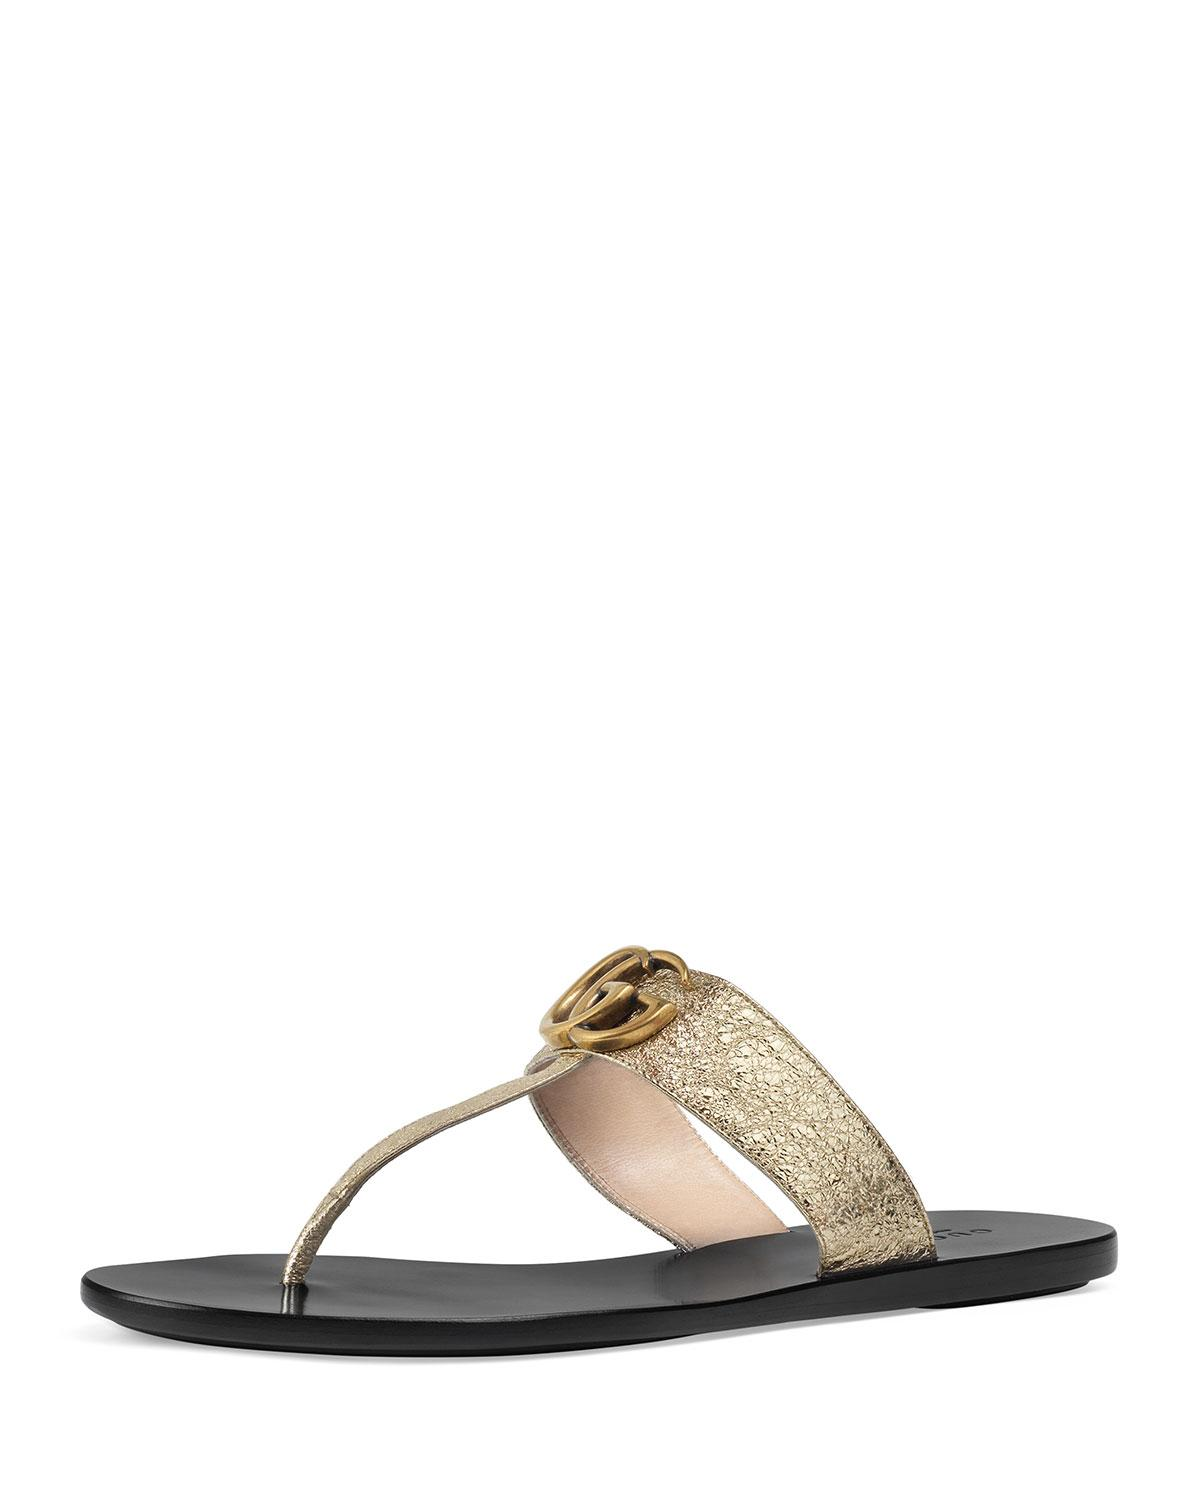 b4d216729 Lyst - Gucci Gold Double G Leather Thong Sandal. in Metallic - Save 13%